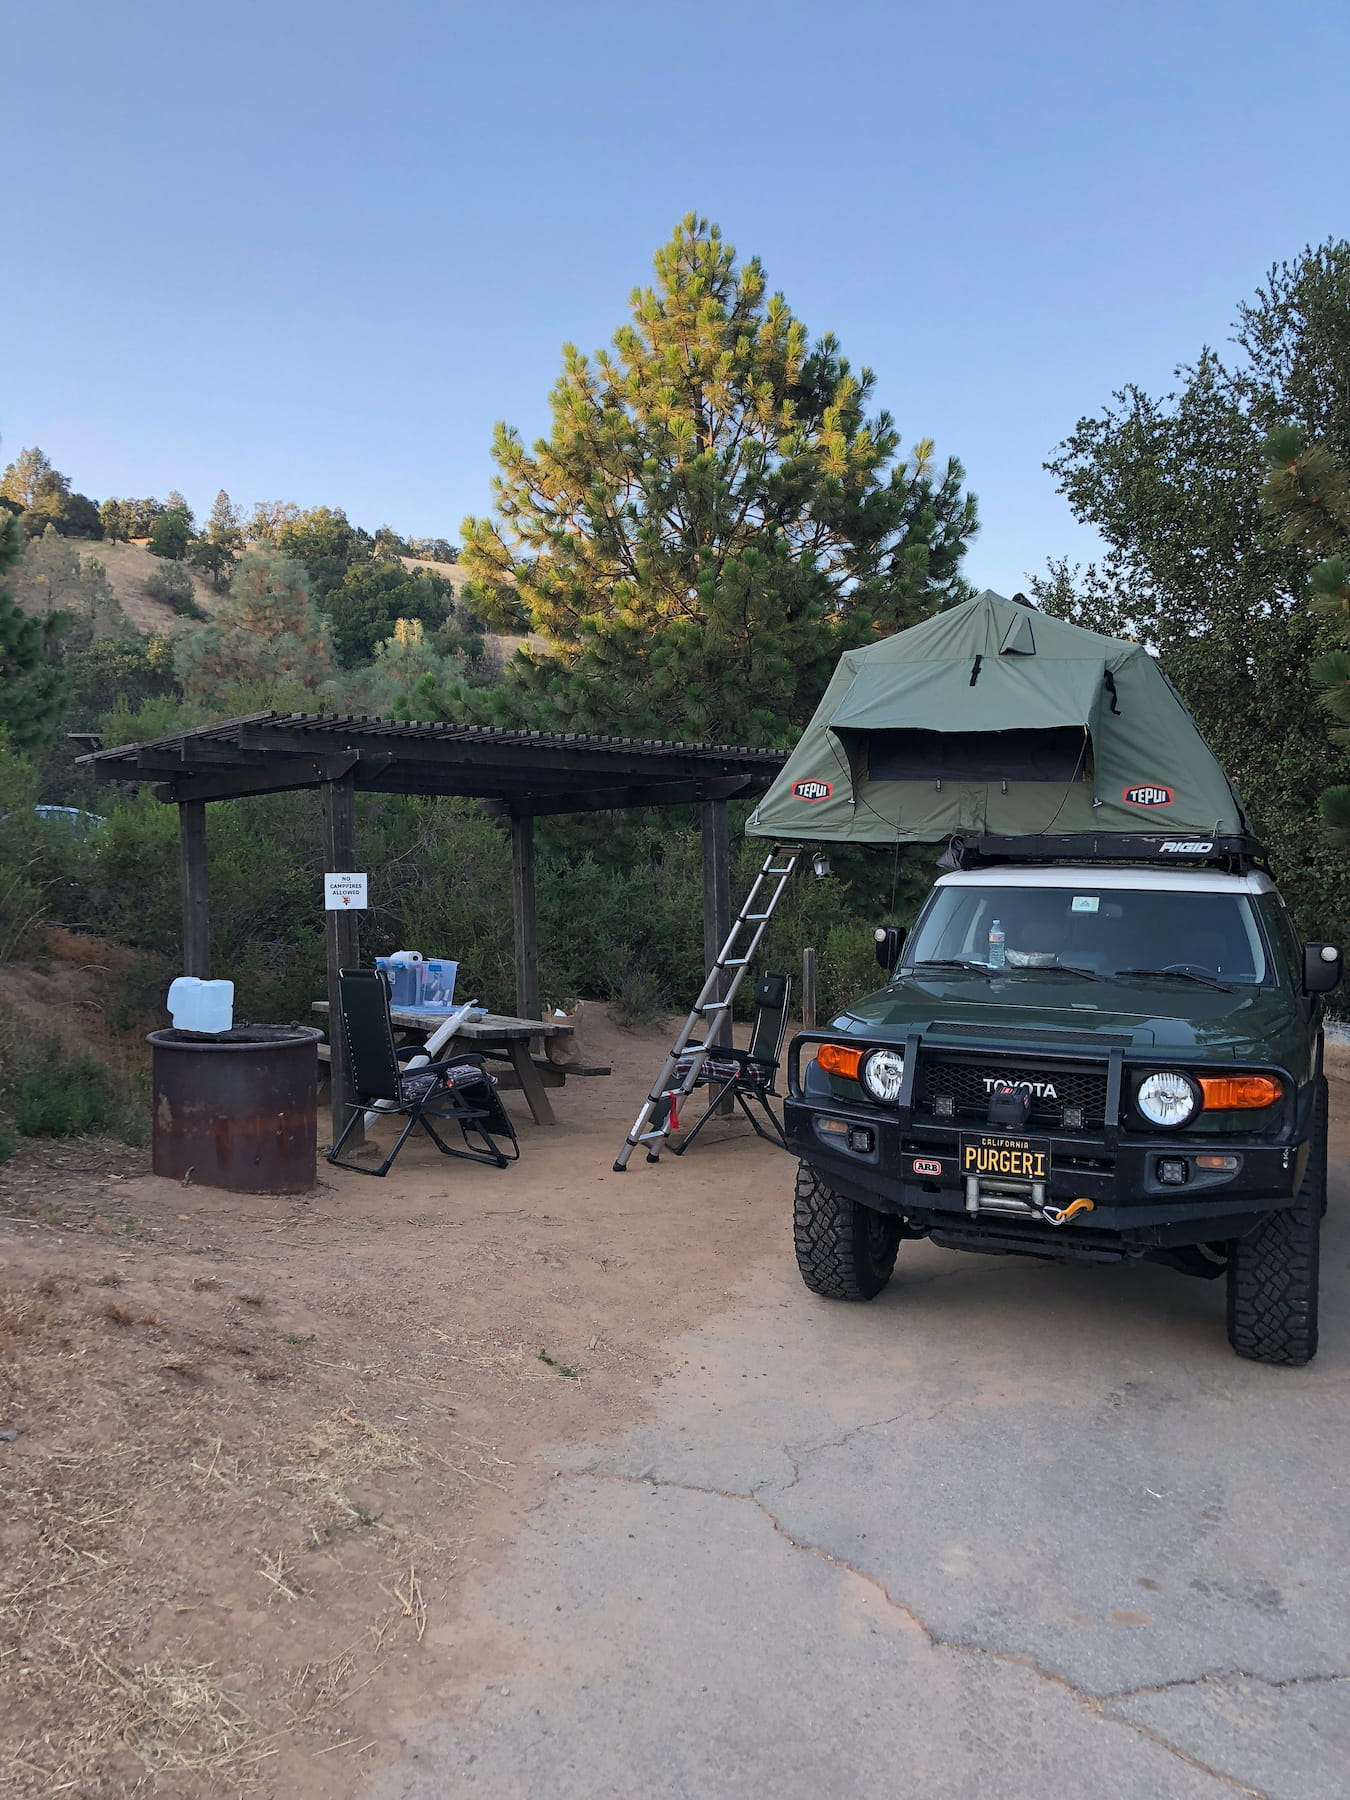 SUV with rooftop tent set up at a sandy forested campsite.